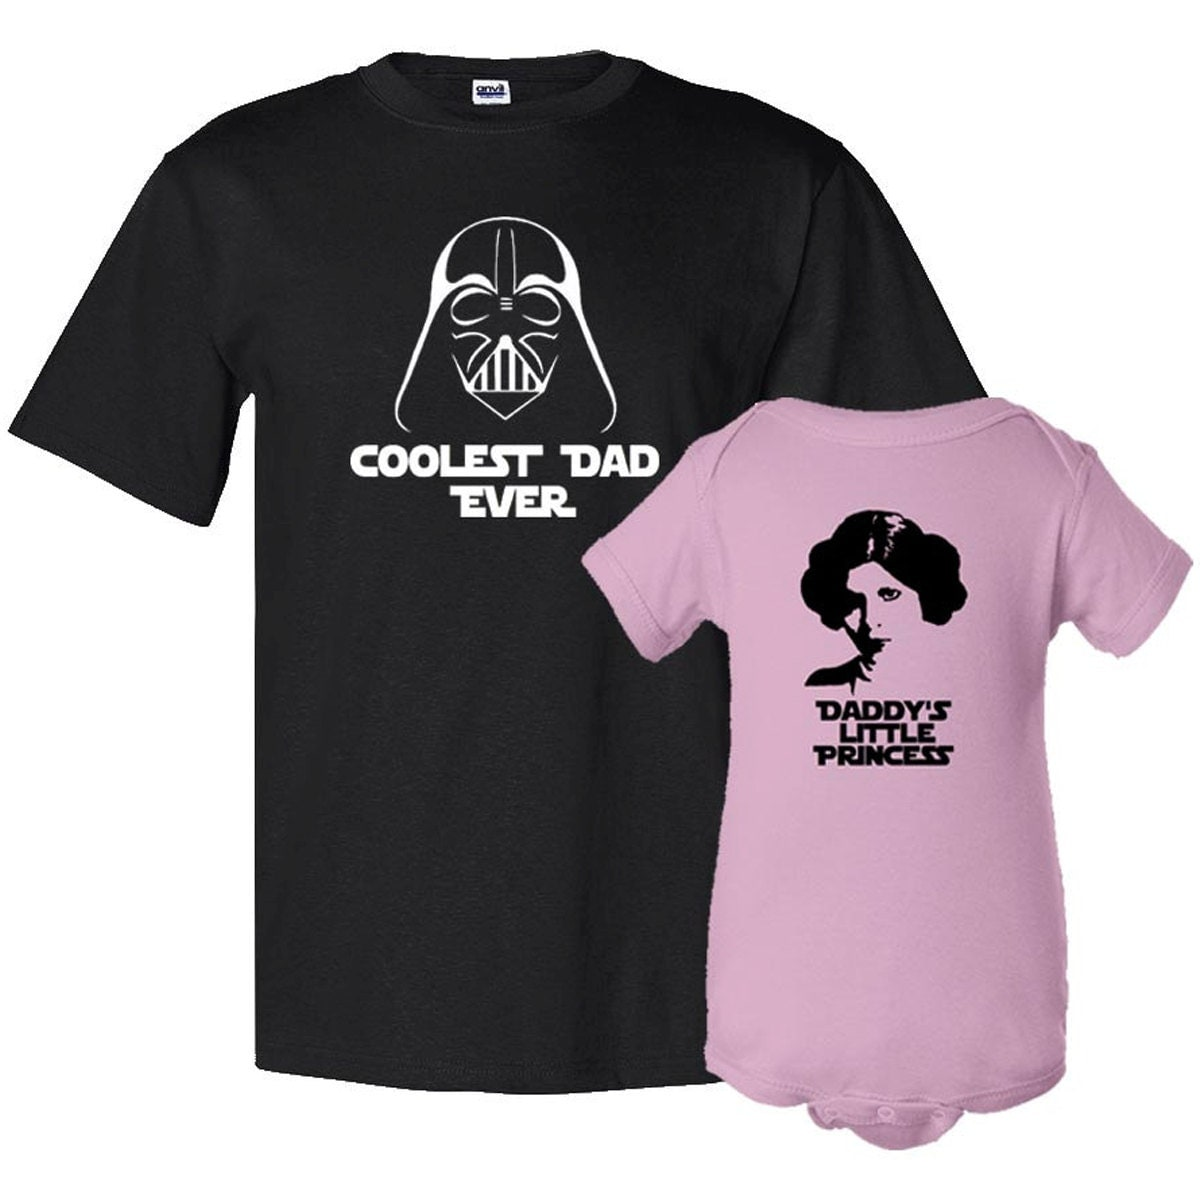 coolest dad ever and daddyu0027s litle princess father tshirt daughter bodysuit matching set first